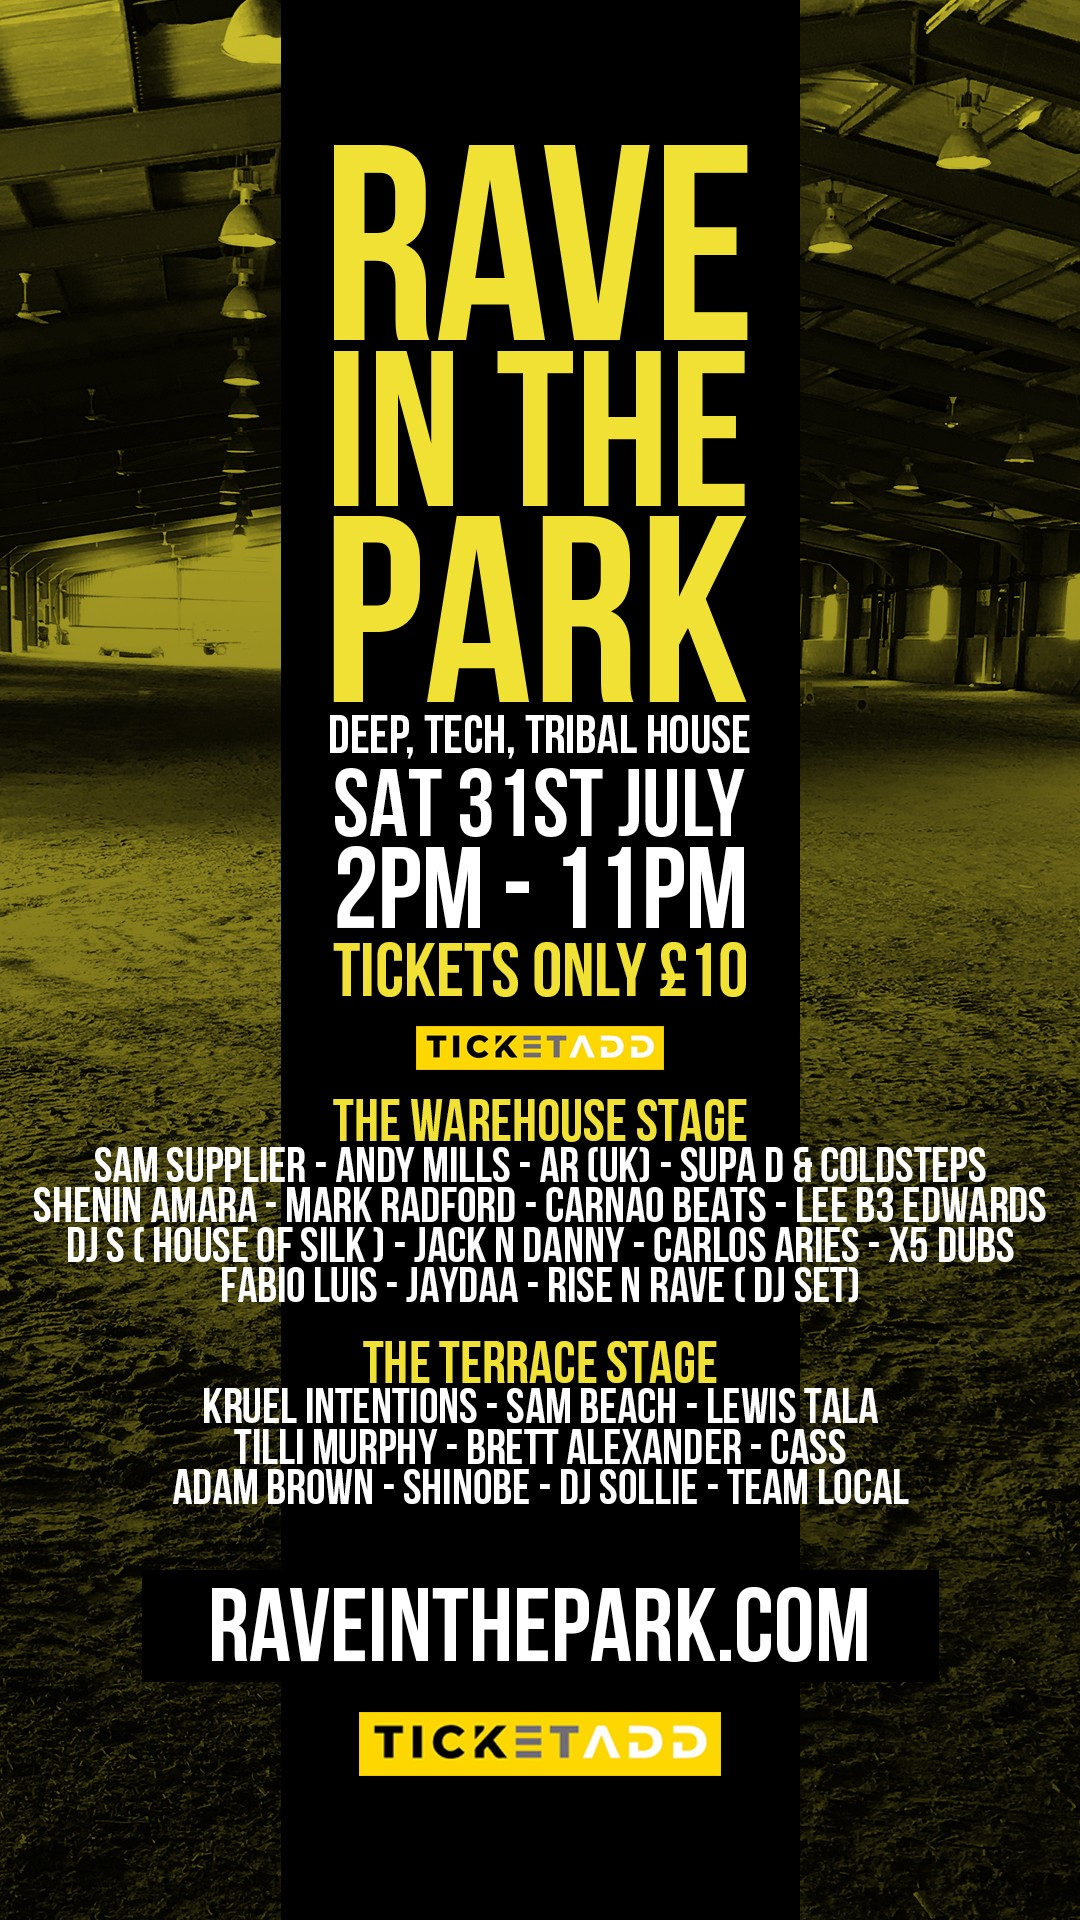 RAVE IN THE PARK